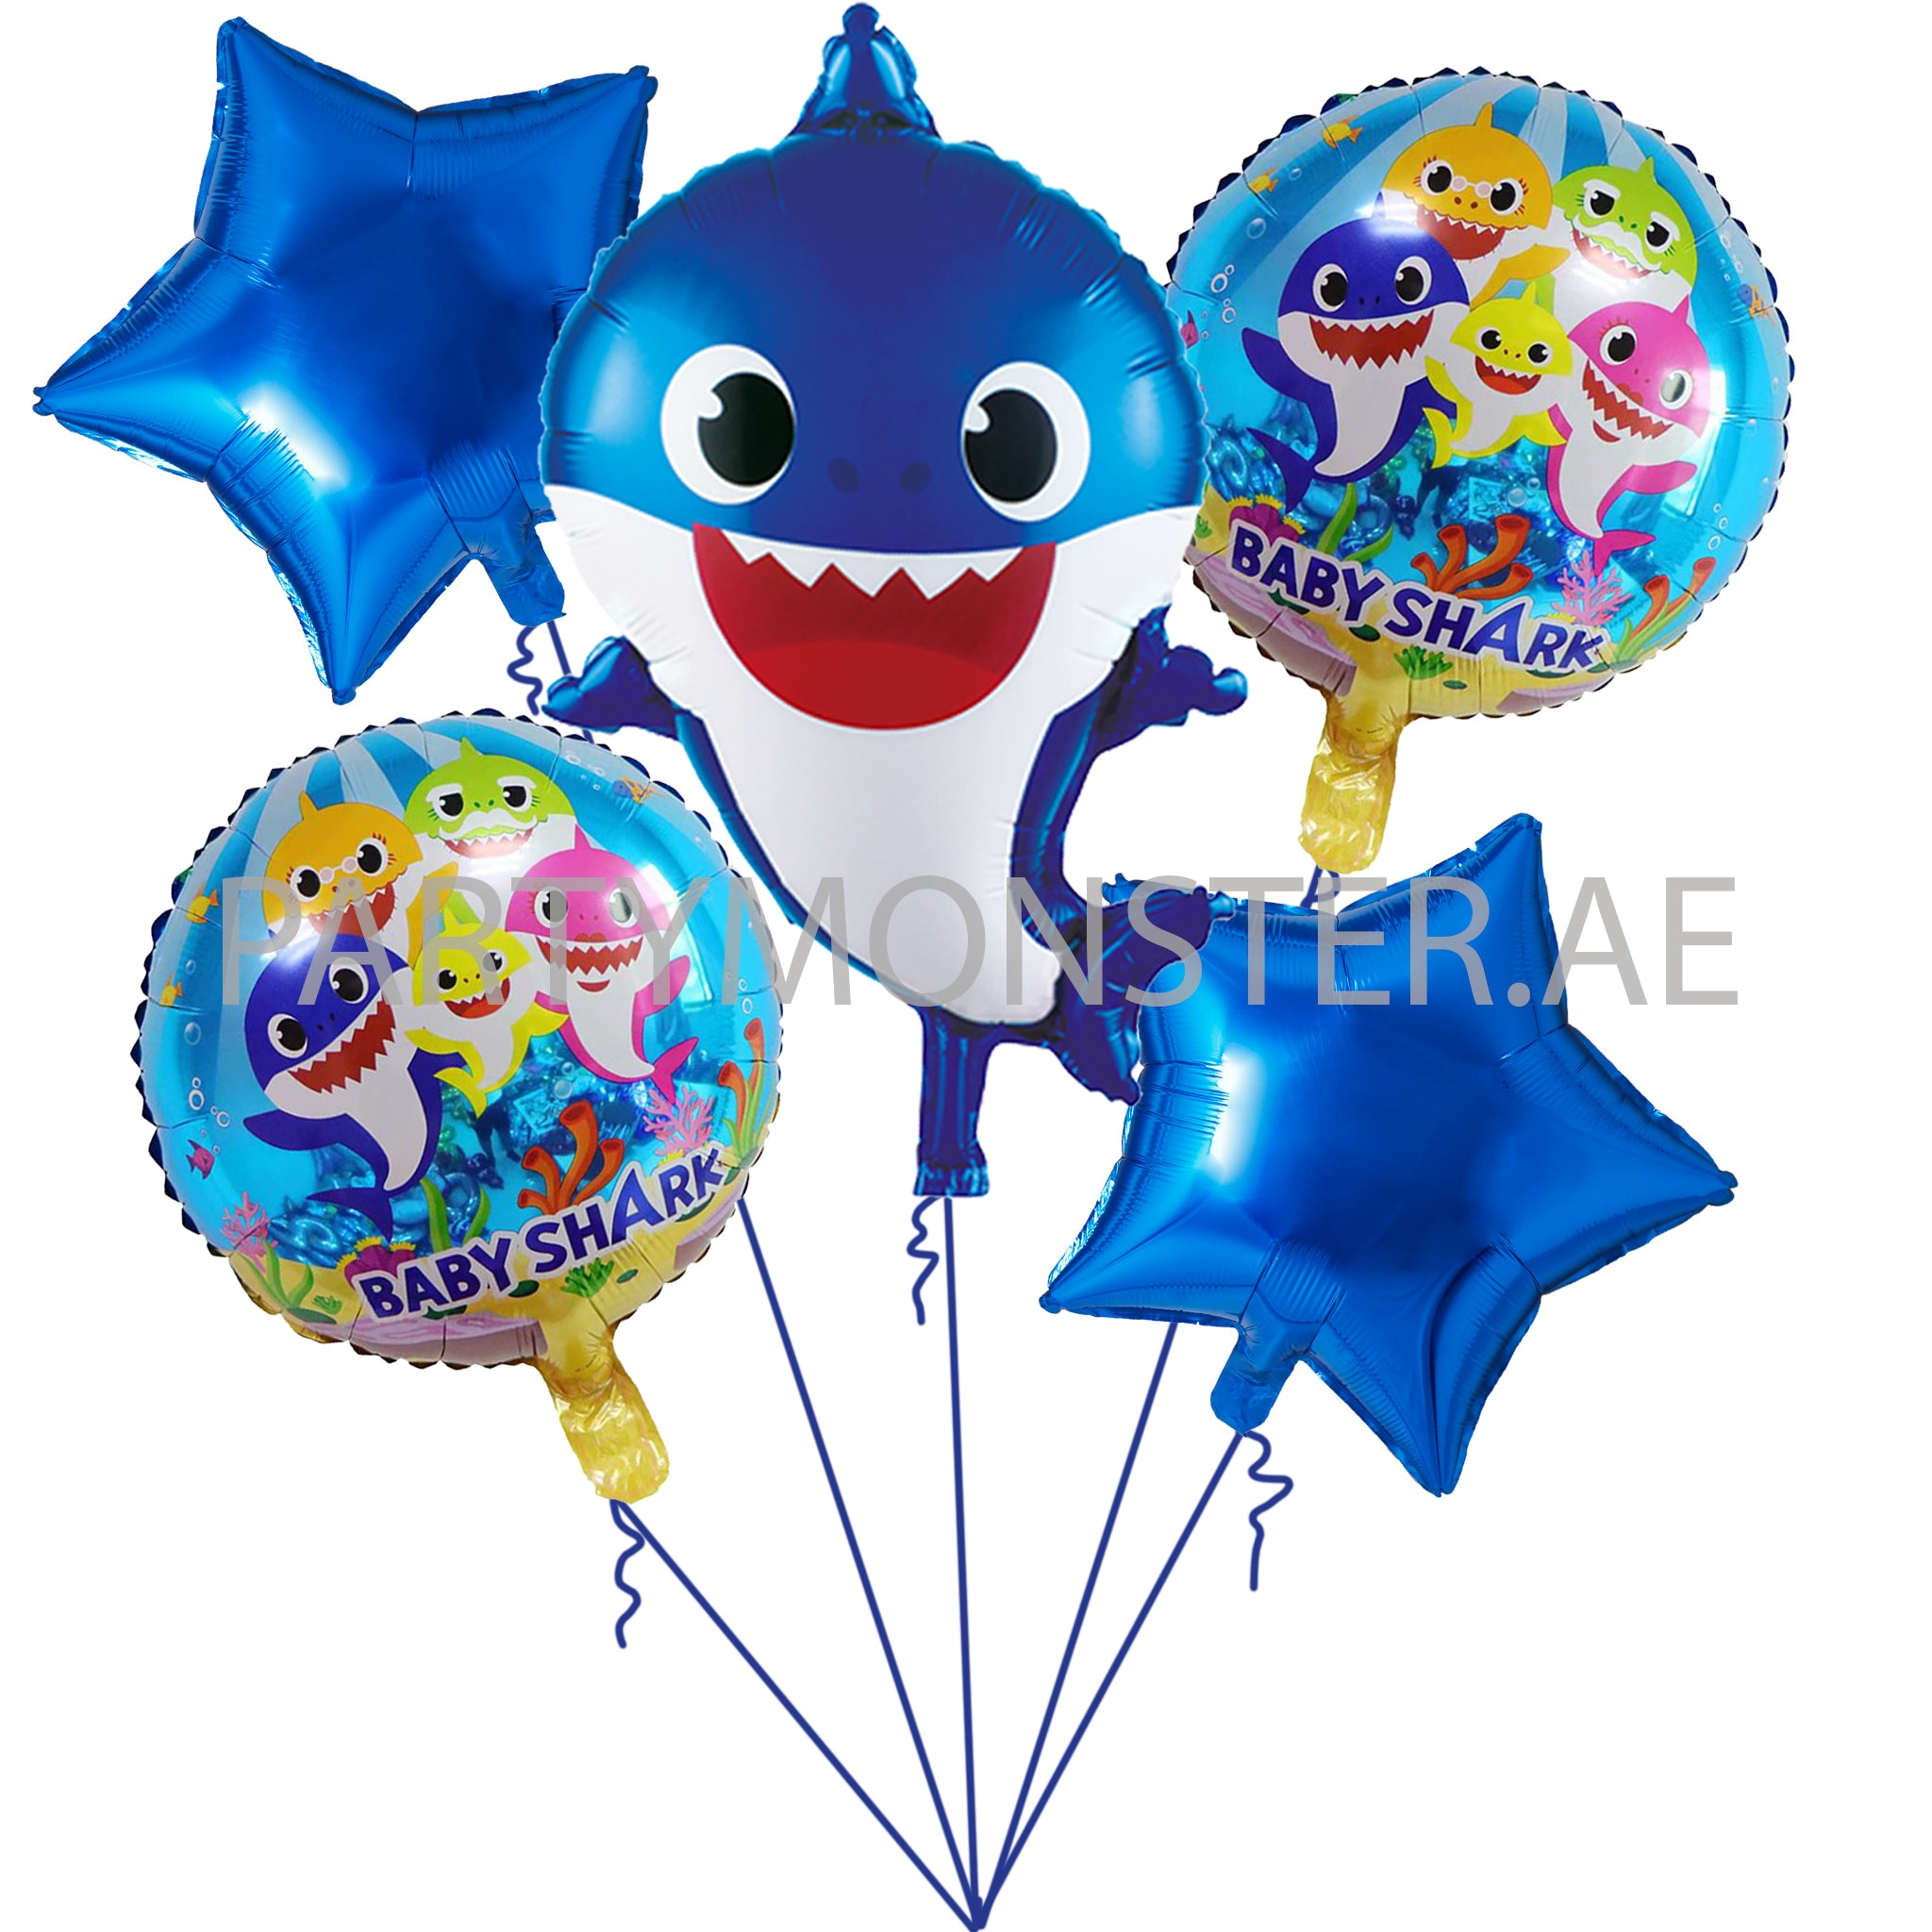 Baby shark themed balloons for sale online in Dubai